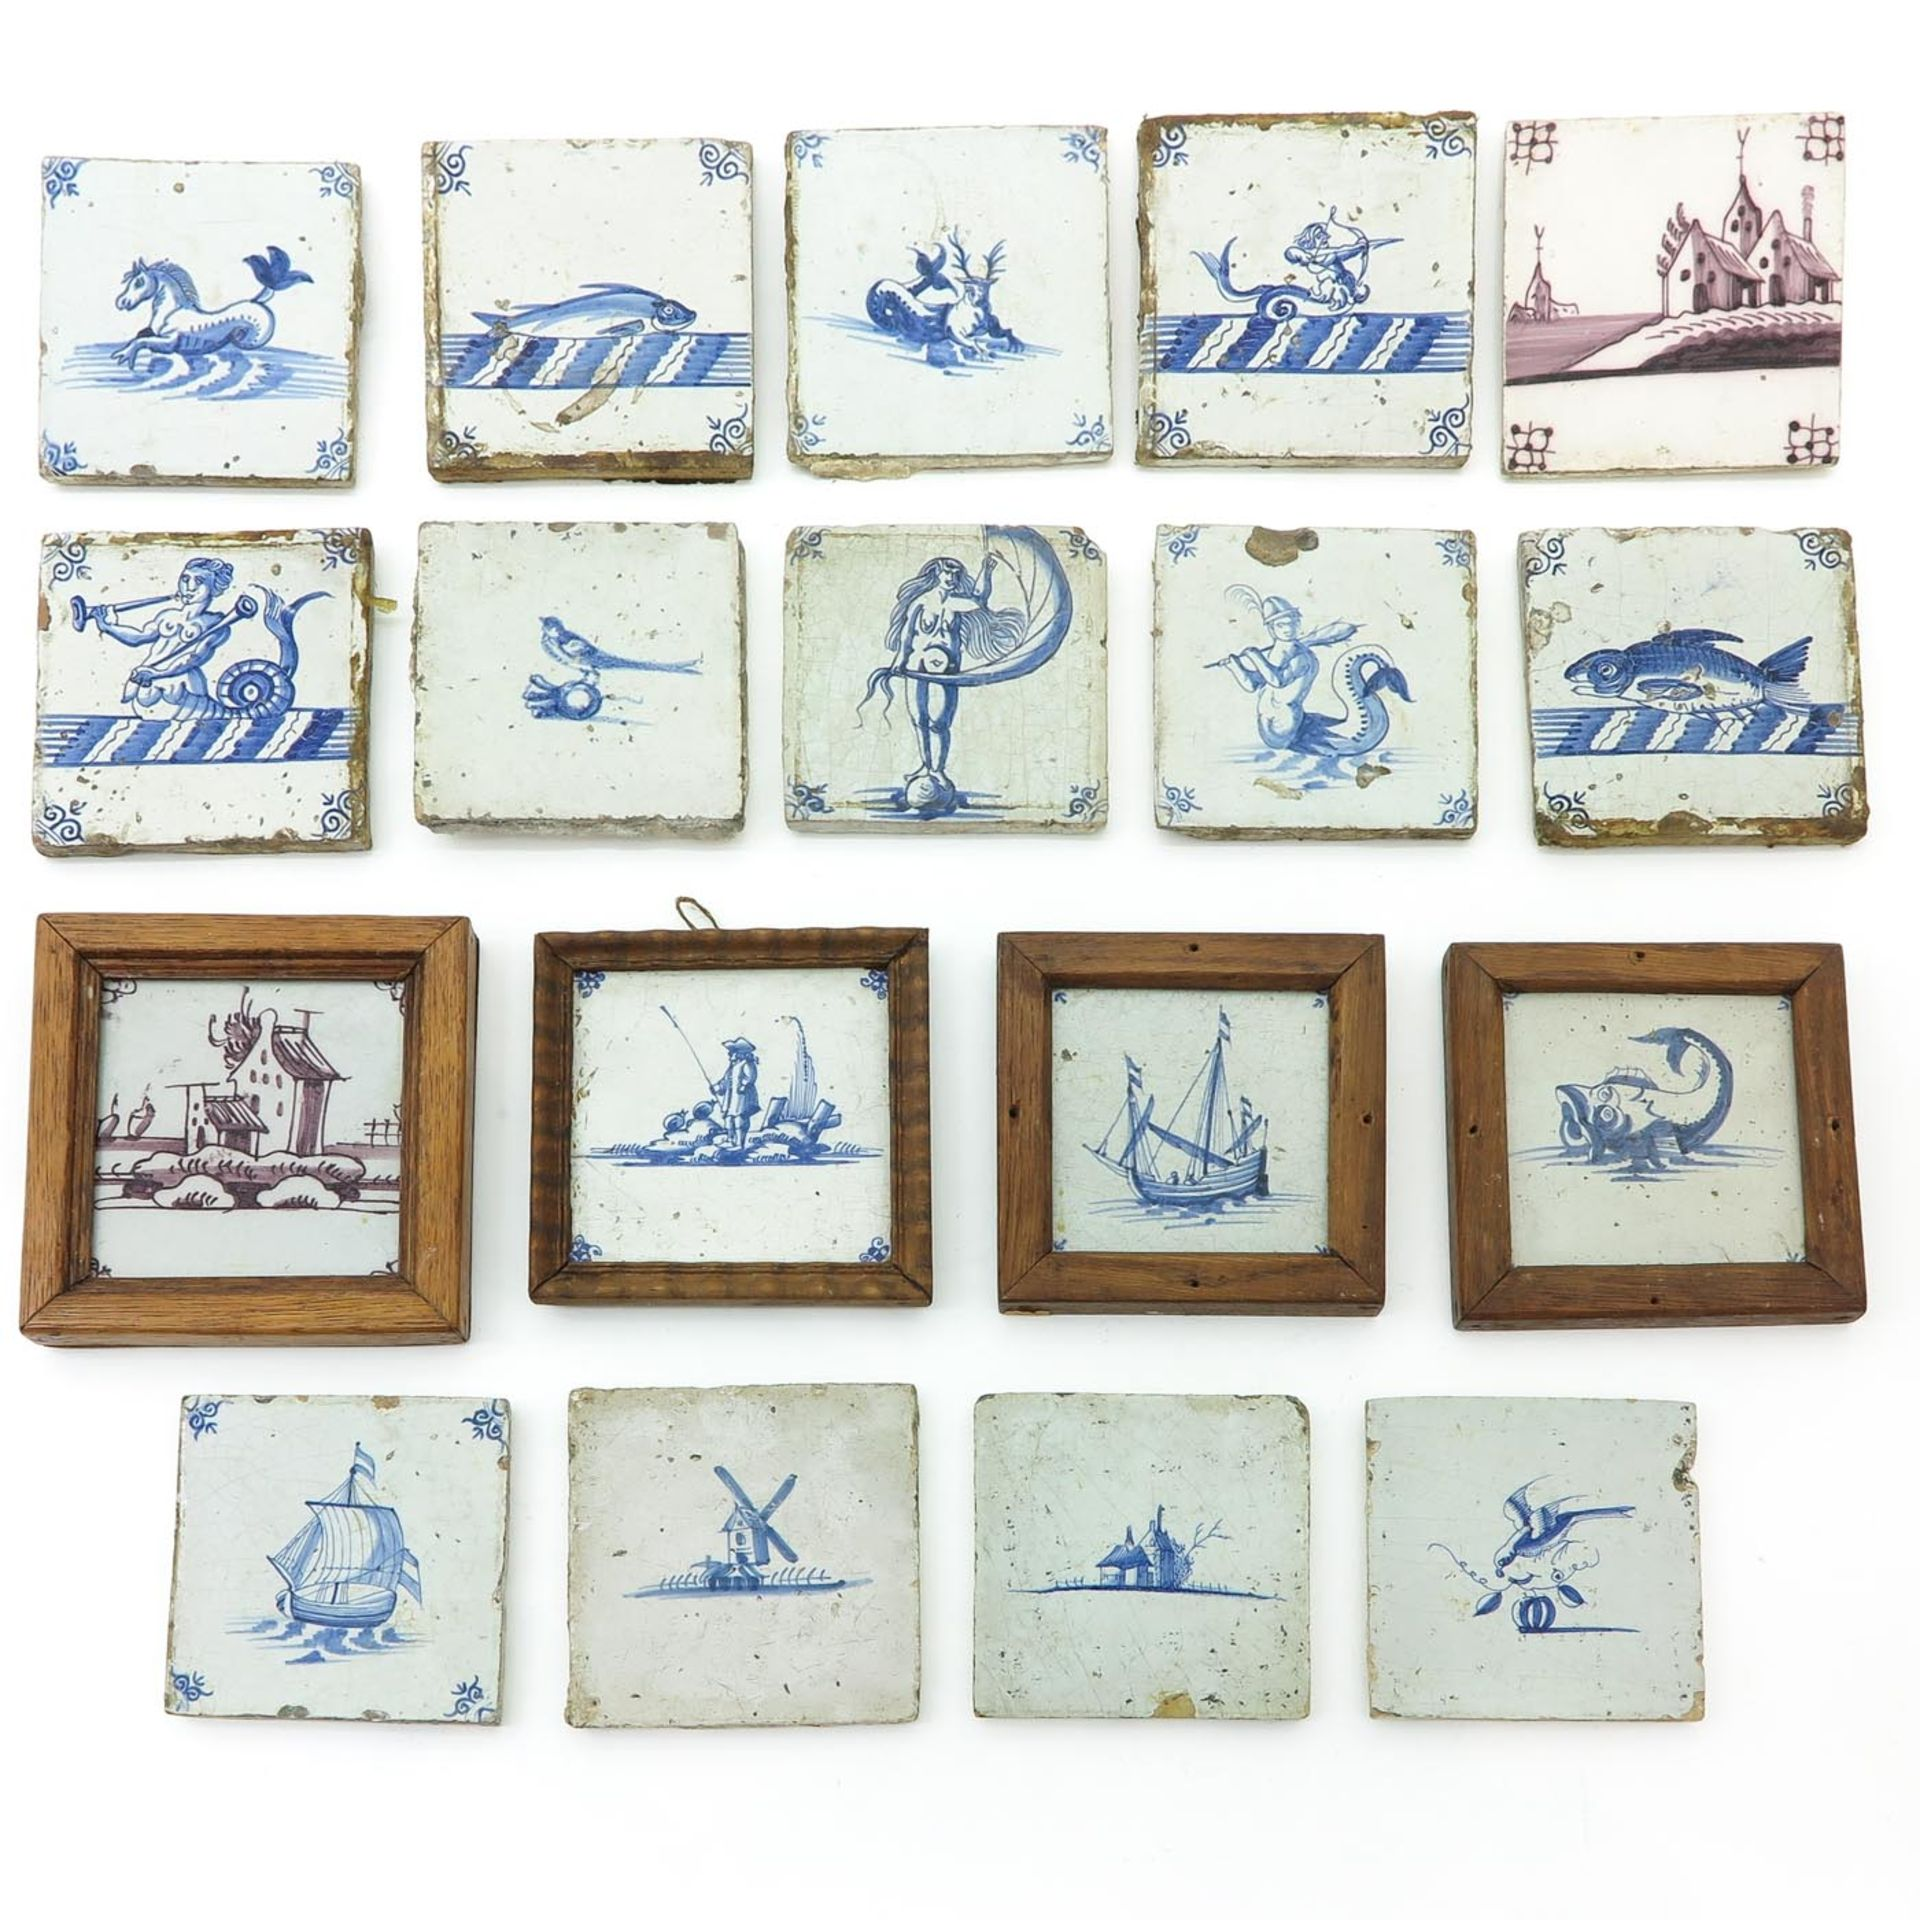 Los 1036 - A Collection of 17th - 18th Century Tiles